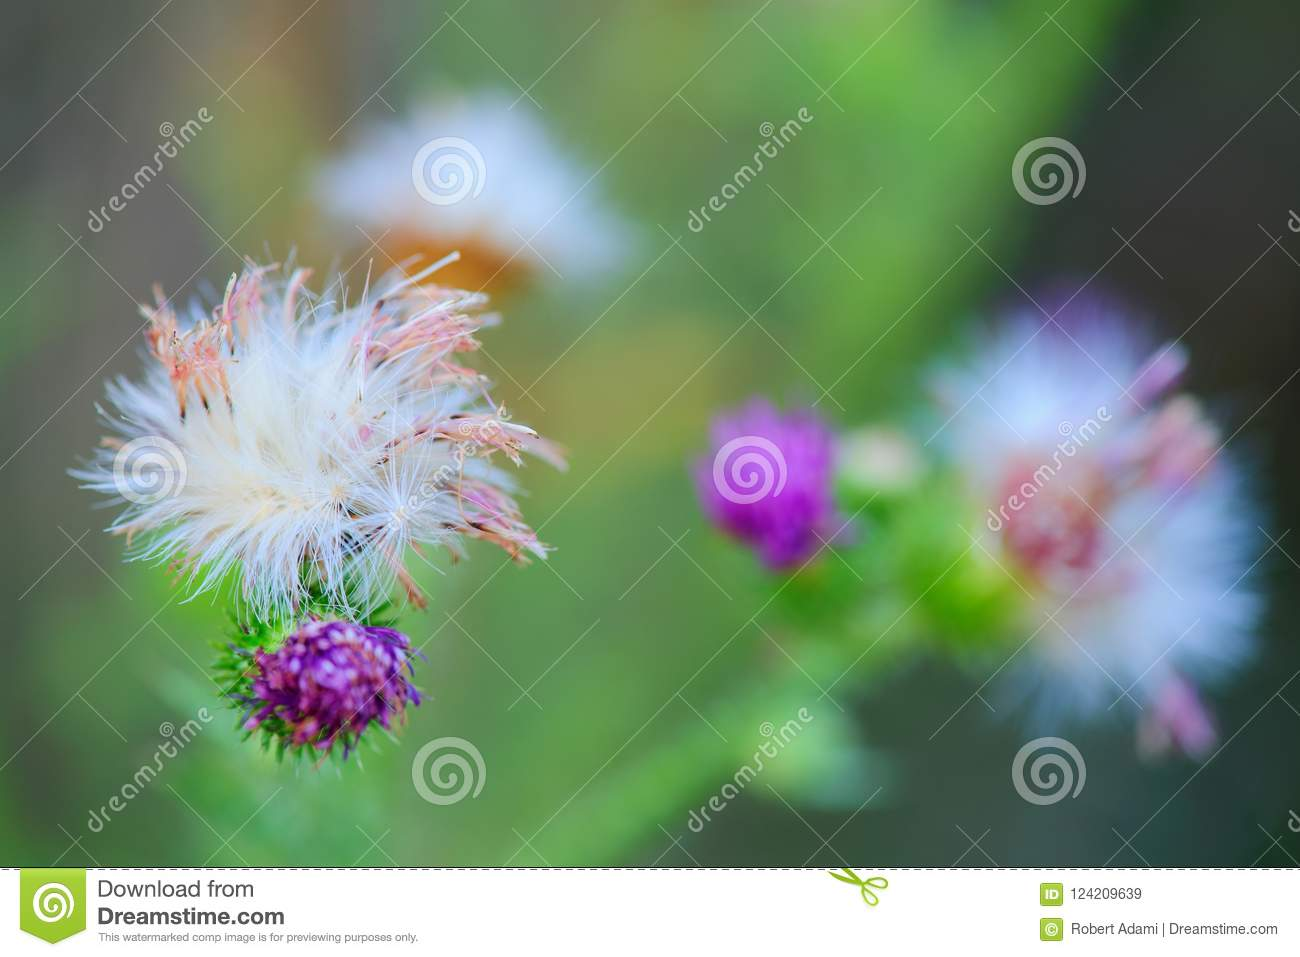 Withered flowers on thistle close up stock image image of blurred withered and falling thistle flowers taken at dusk in the meadow mightylinksfo